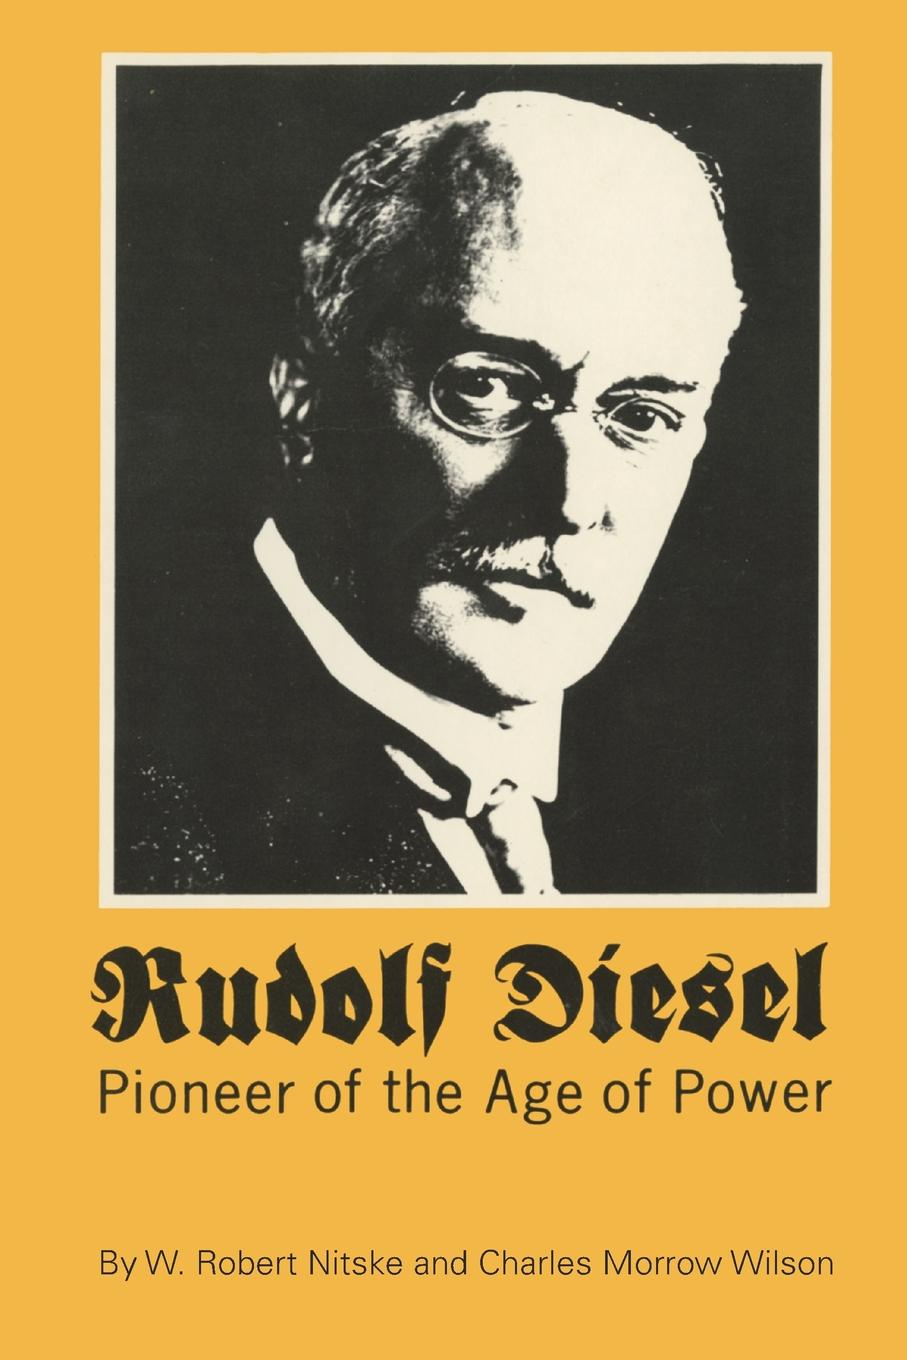 W Robert Nitske, Charles Morrow Wilson Rudolf Diesel. Pioneer in the Age of Power